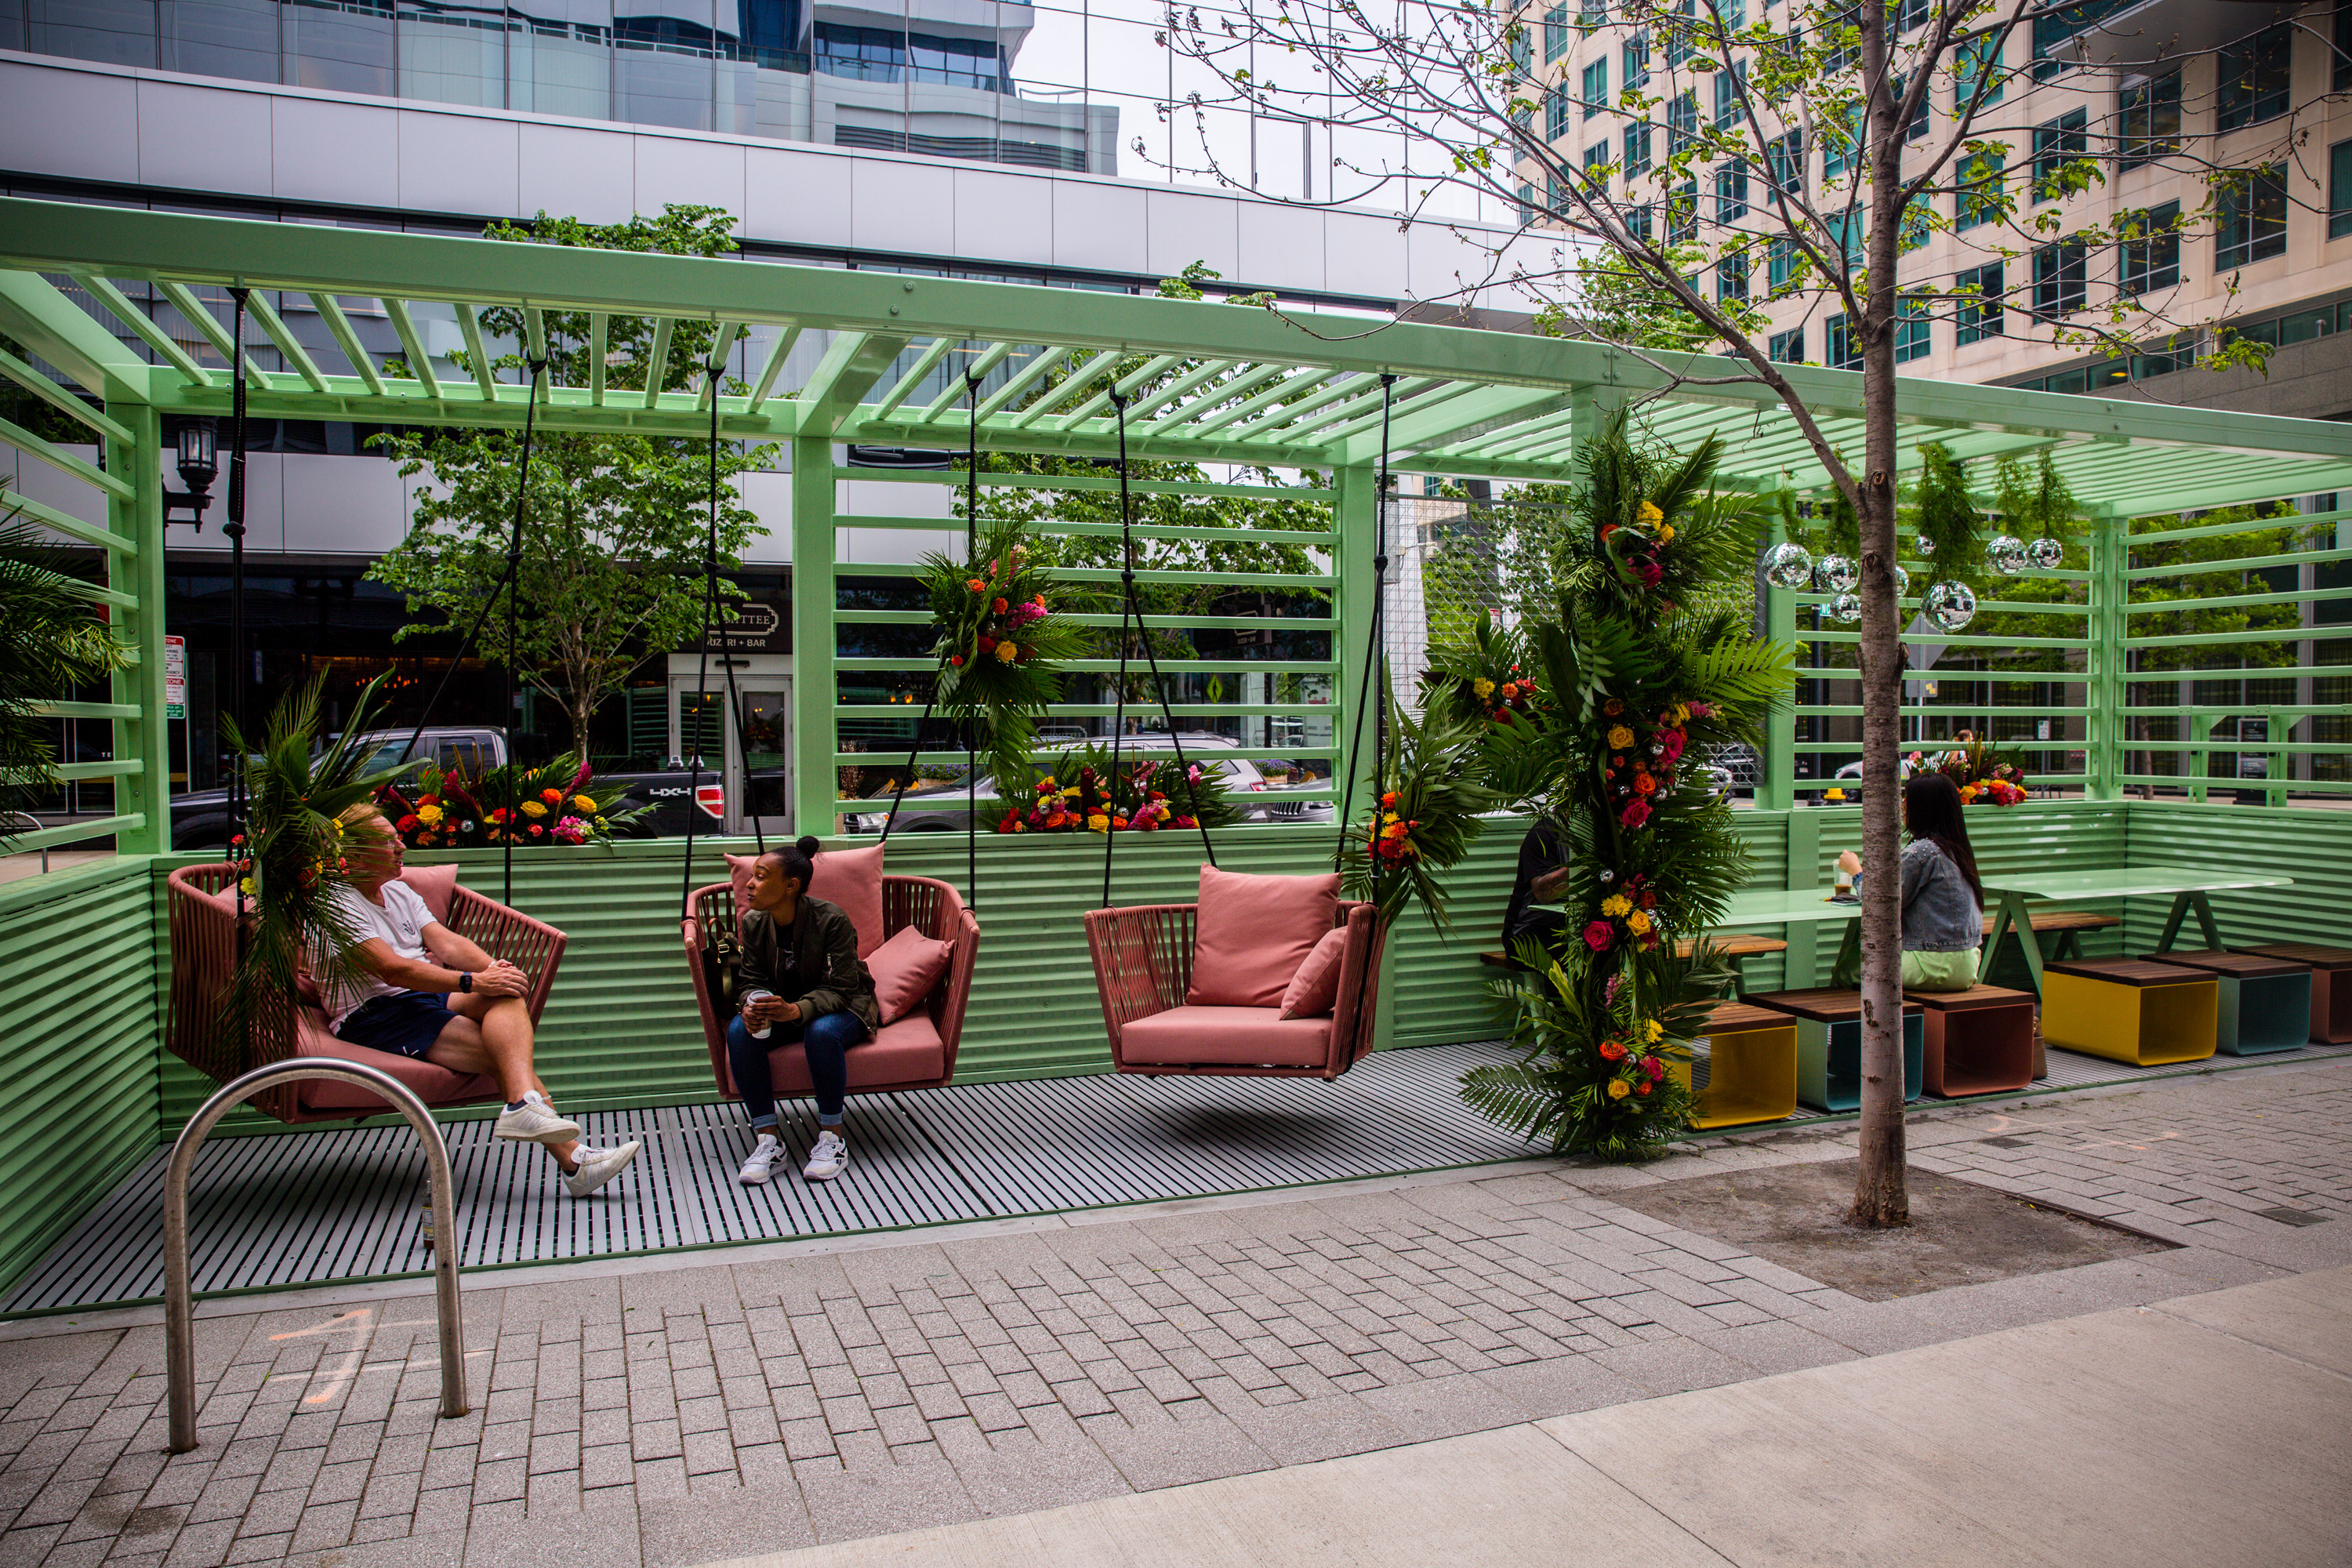 """WS Development has installed several """"parklets"""" on its properties in the Seaport. (Boston Seaport by WS Development)"""